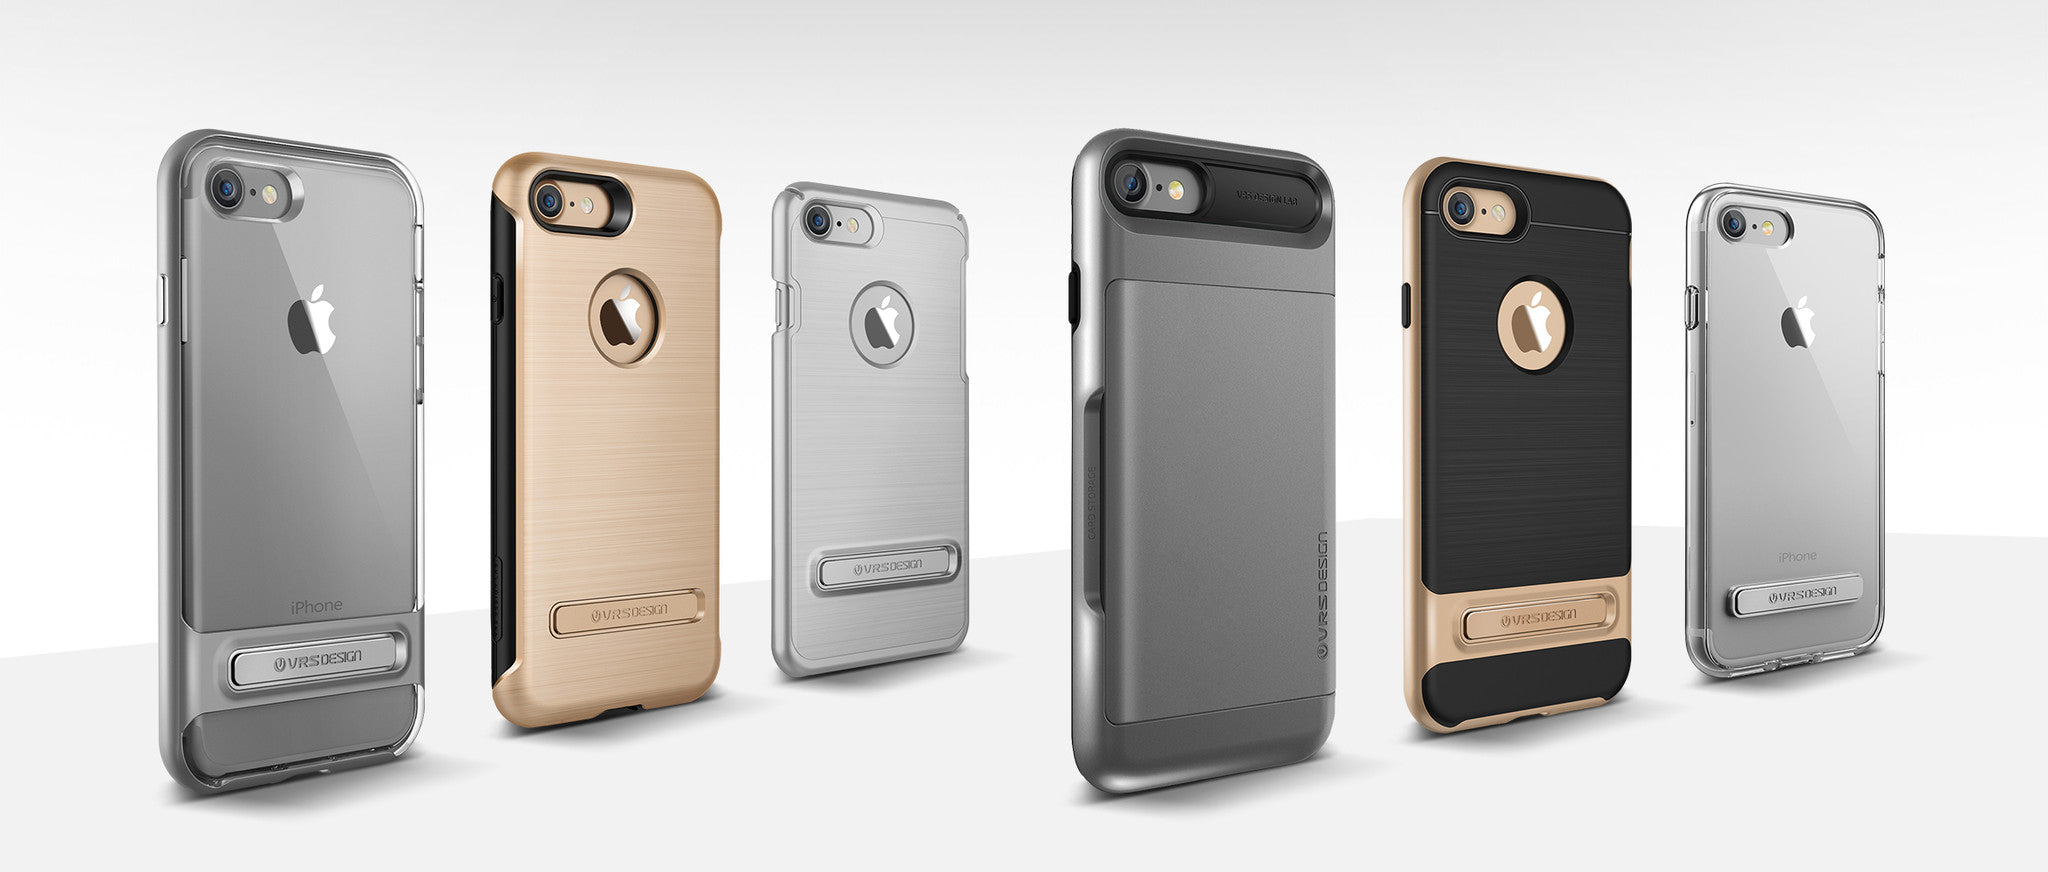 VRS Design debuts state-of-the-art case lineup for the iPhone 7